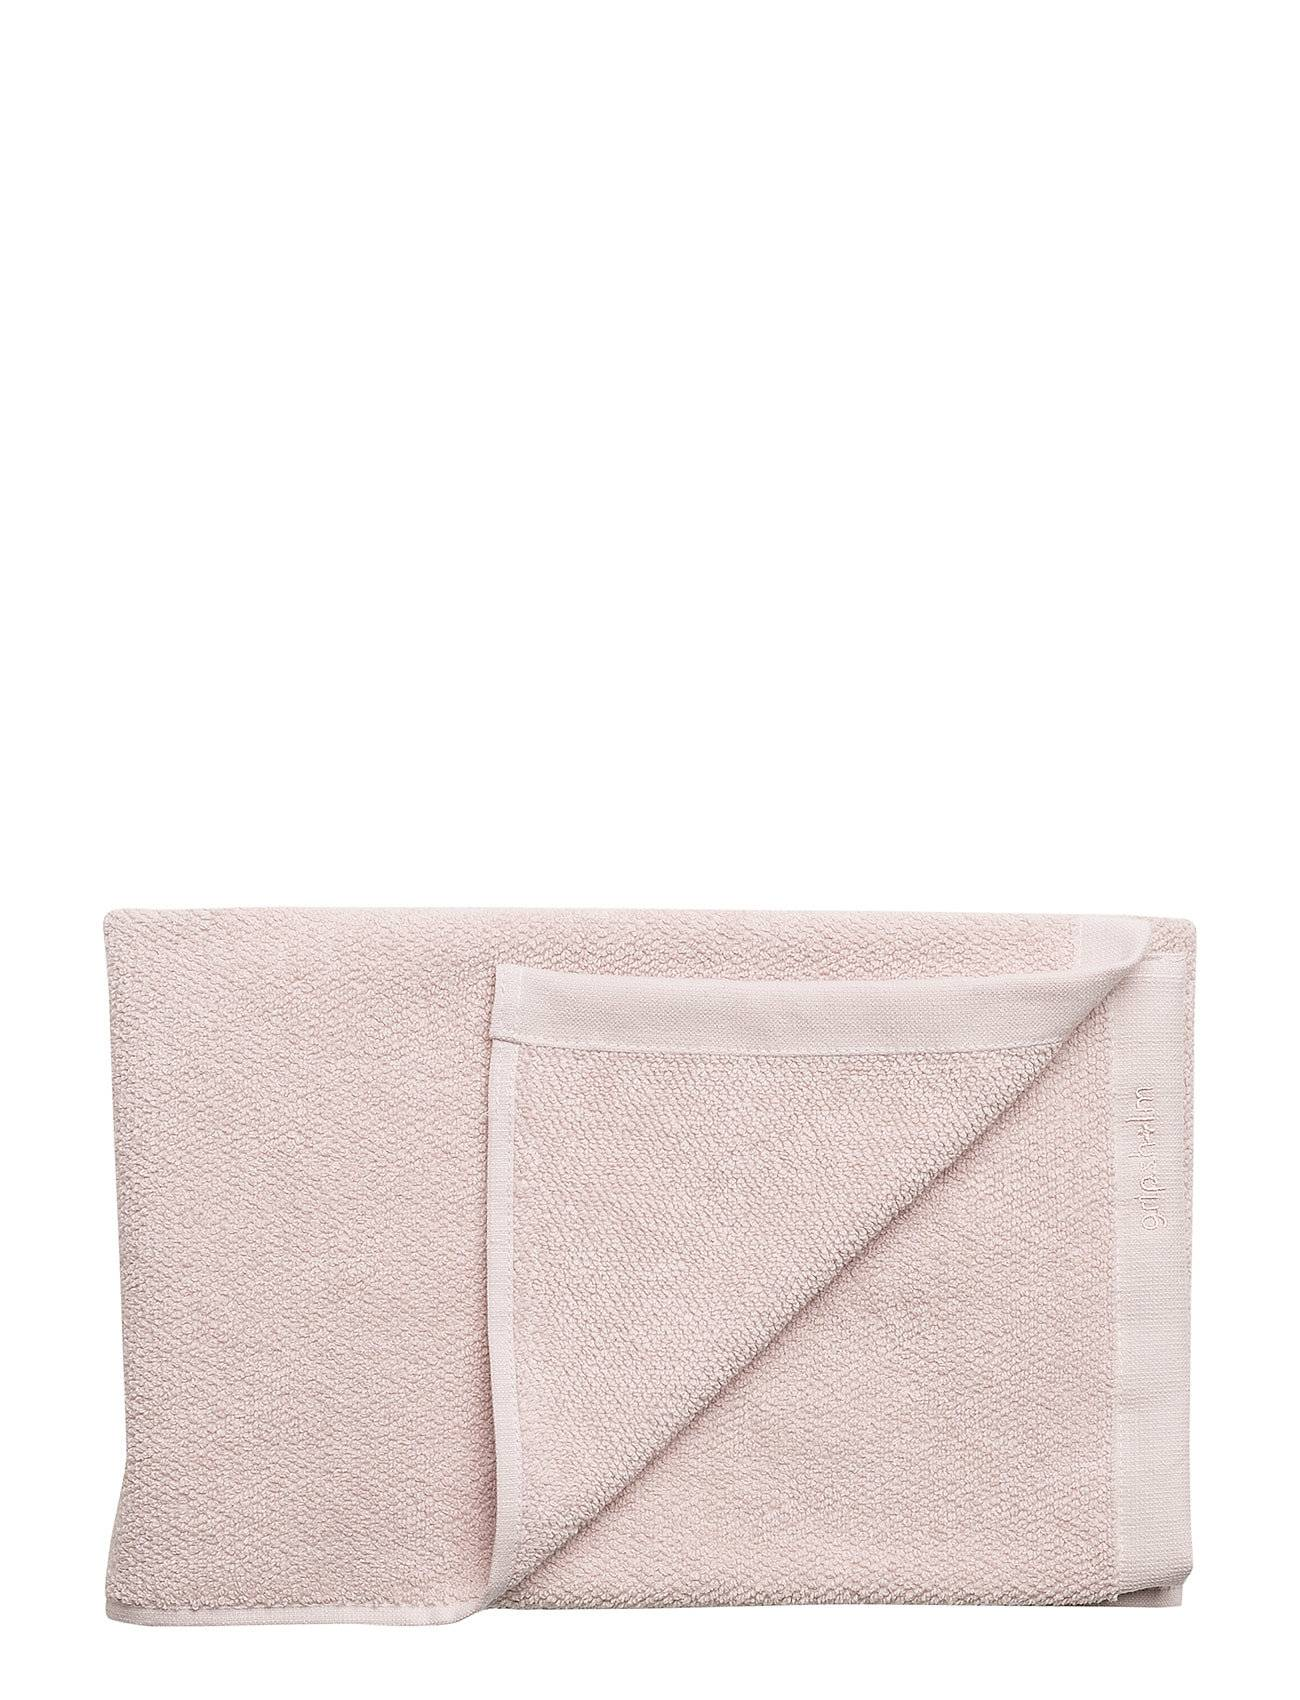 Gripsholm Bath Towel